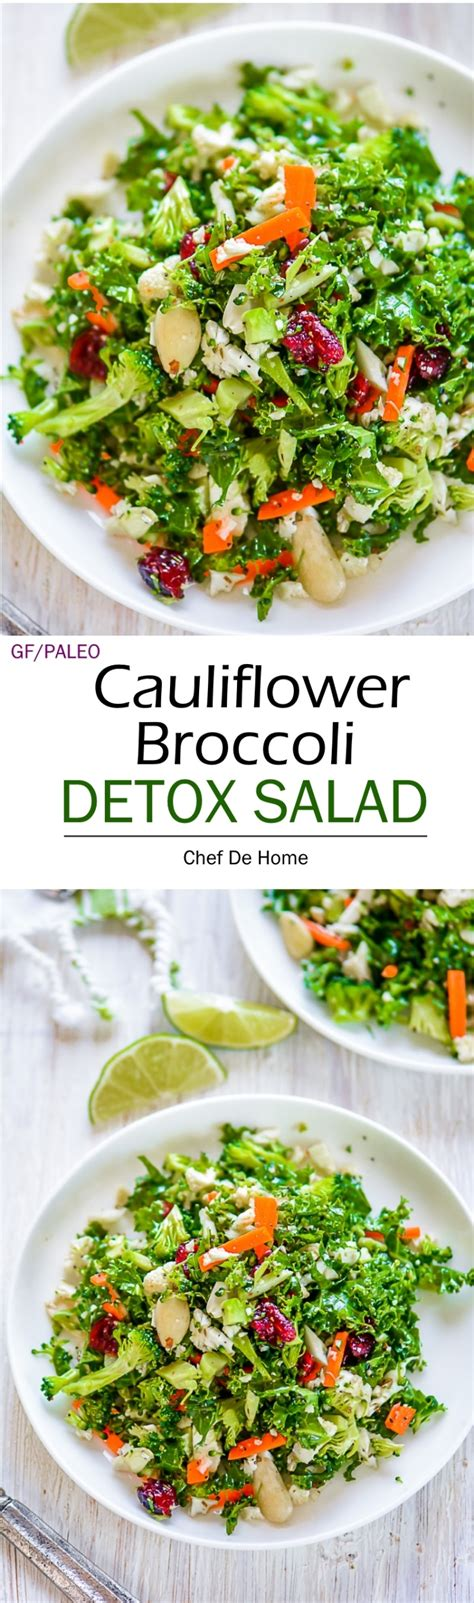 Celery Detox Salad by Cauliflower And Broccoli Detox Salad Recipe Chefdehome